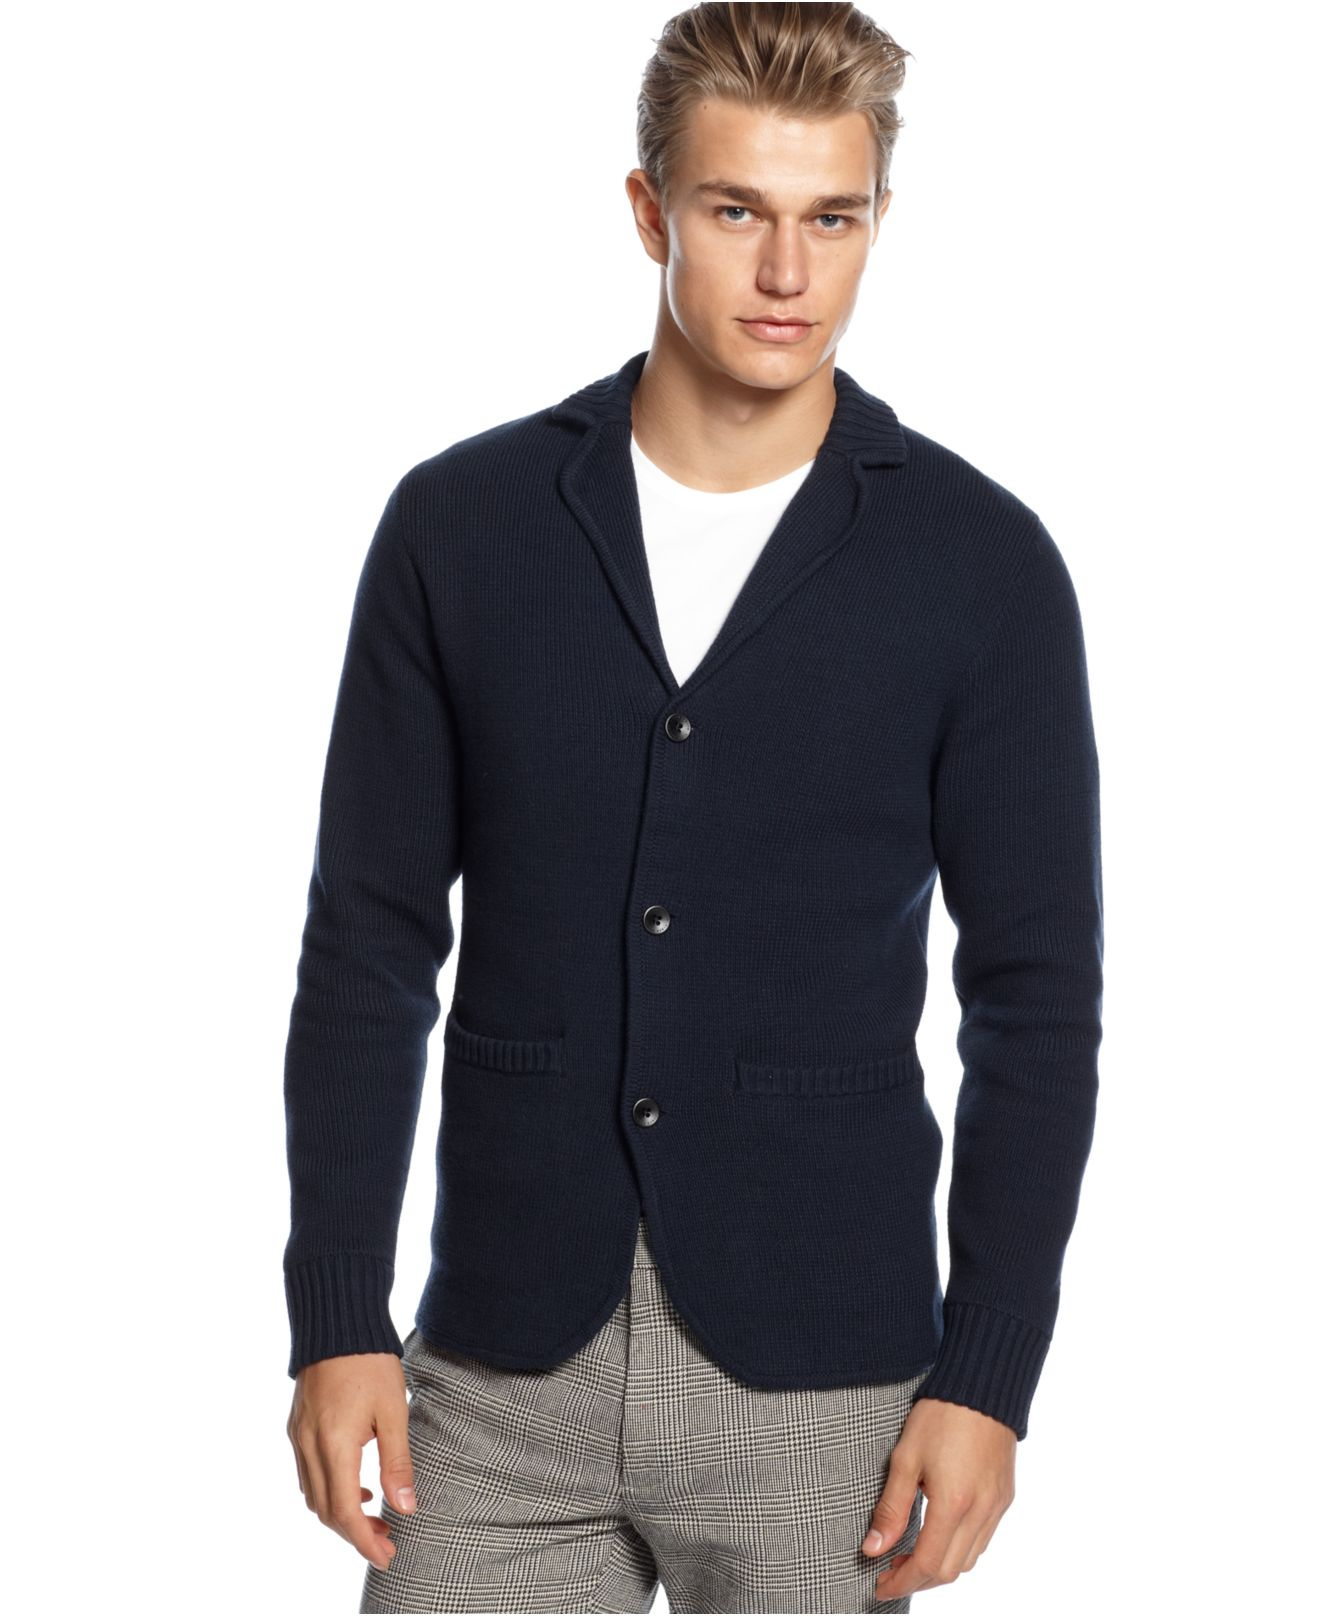 Vince camuto Slim-Fit Button-Down Blazer Cardigan Sweater in Blue ...